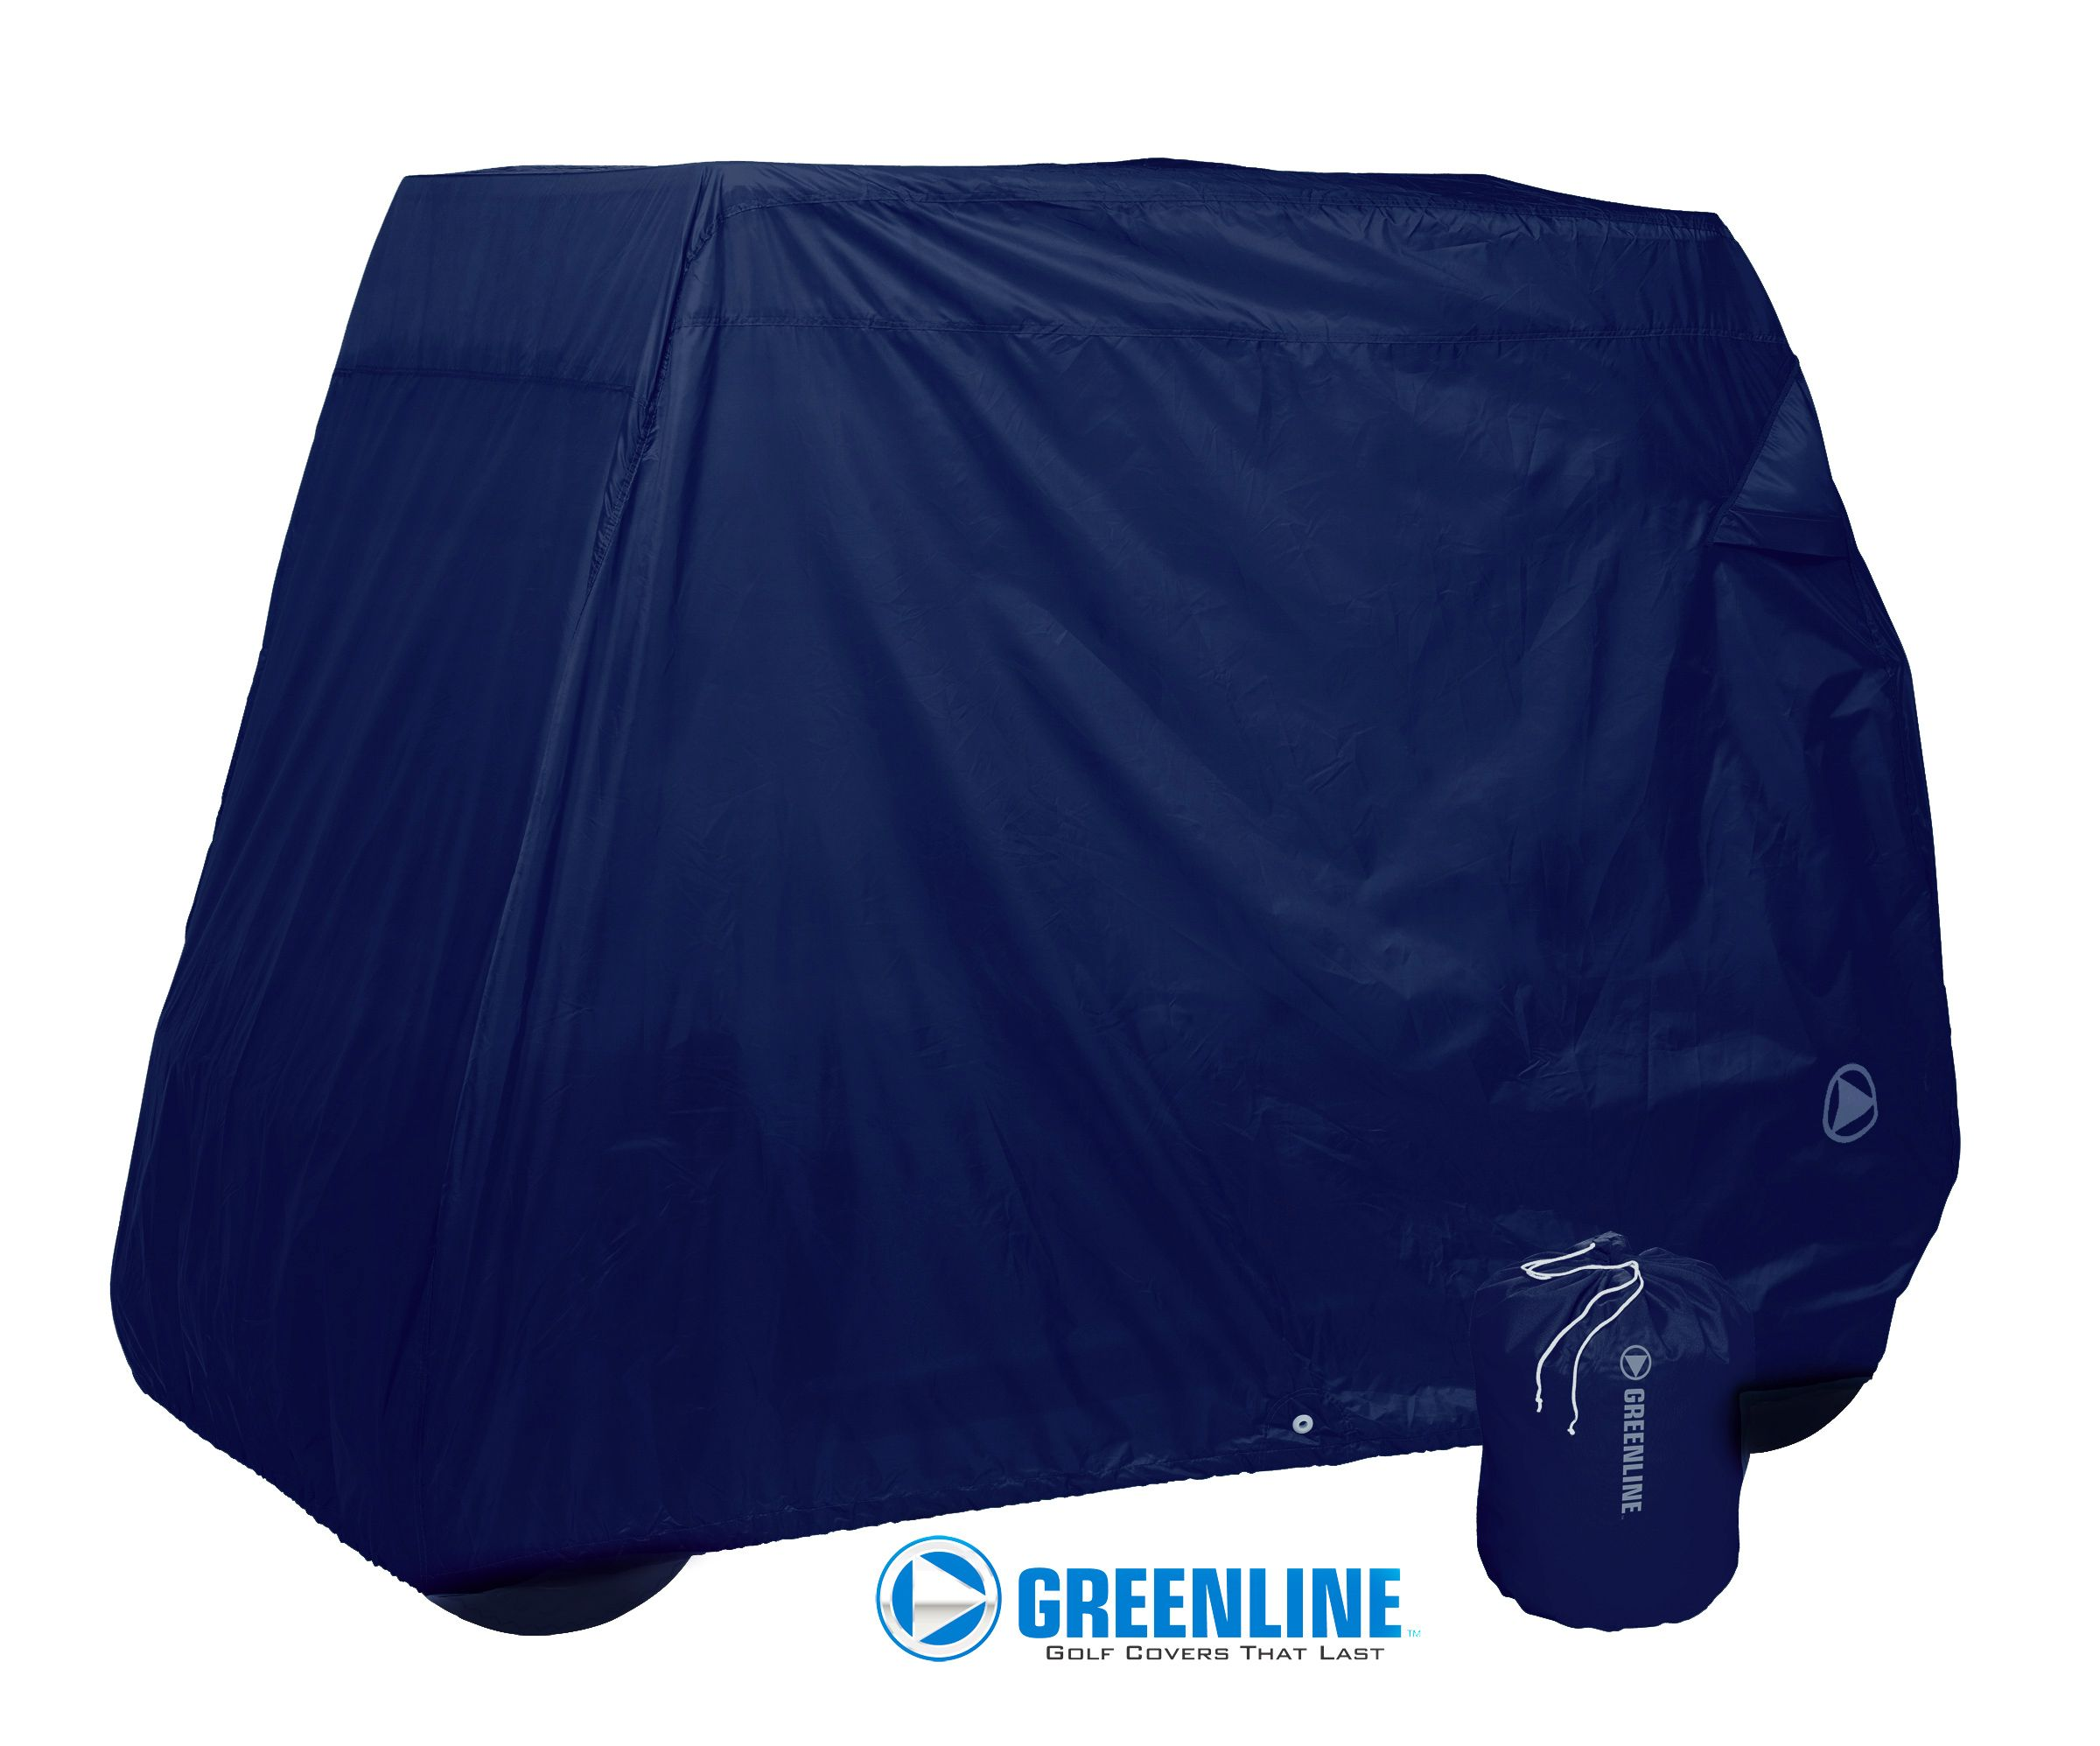 Golf cart storage covers|2, 4, 6, p|short top + rear seat|lifted Ezgo Golf Cart Storage Cover on custom canvas covers, ezgo gas golf carts, ezgo custom golf carts, yamaha golf cart covers, club cart covers, shock covers, ezgo club cover, rv storage covers, clear vinyl seat covers, ezgo seat covers, sam's club car covers, golf cart weather covers, yamaha golf car seat covers, ezgo rxv, club car storage covers, ezgo electric golf carts, ezgo golf cart rain covers, utv storage covers, equipment covers, golf cart seat covers,